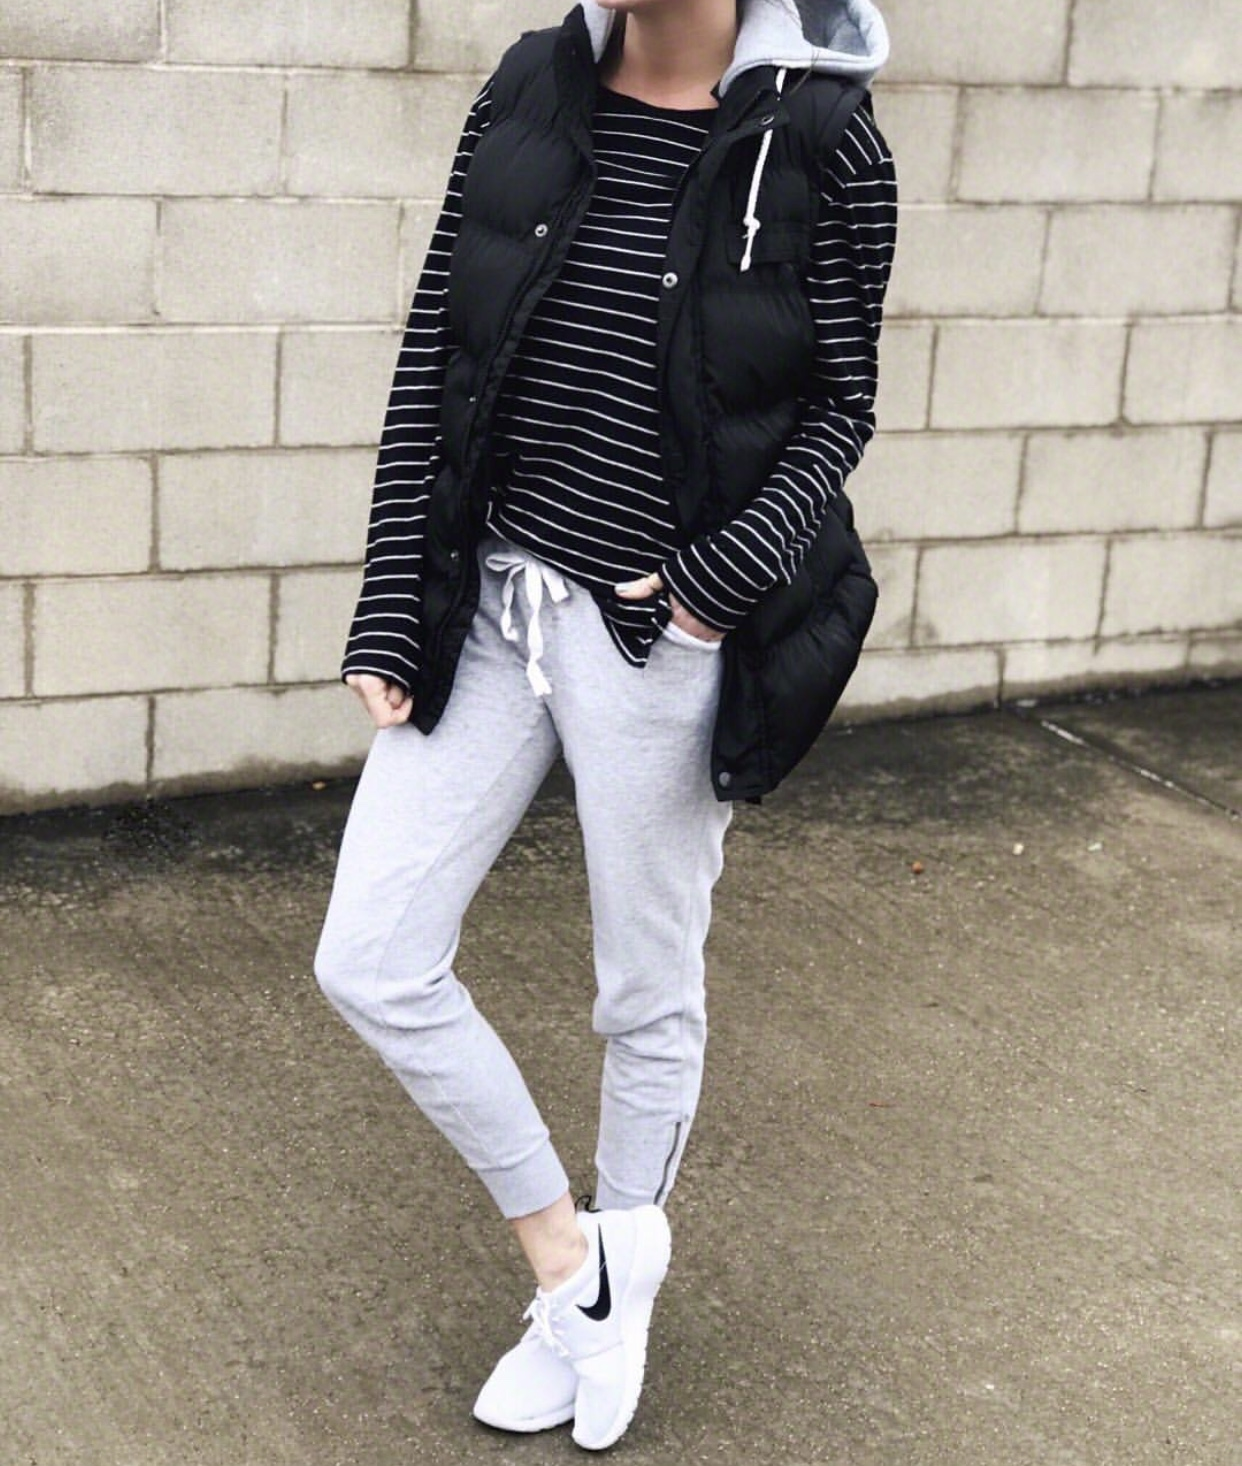 Casual style, tee, puffer vest, and joggers